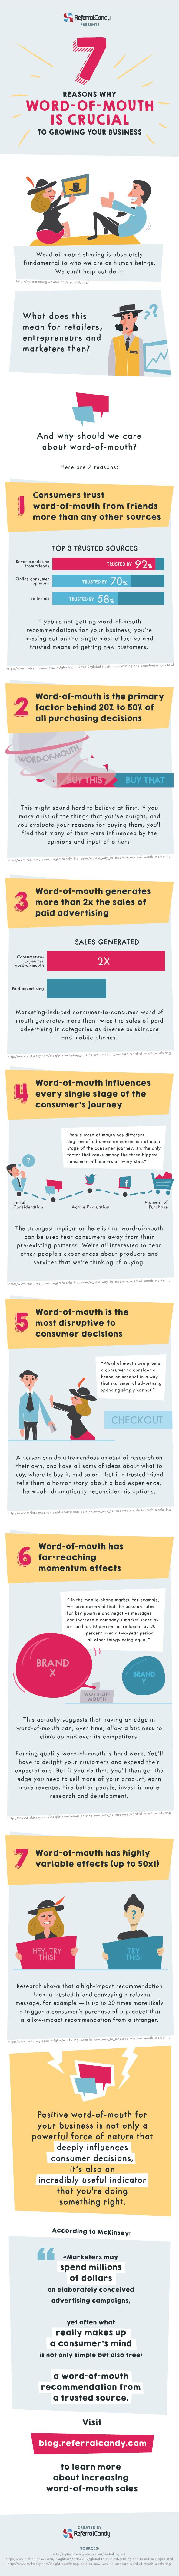 7 Reasons Why Word-Of-Mouth is an Essential Part of Marketing Your Business